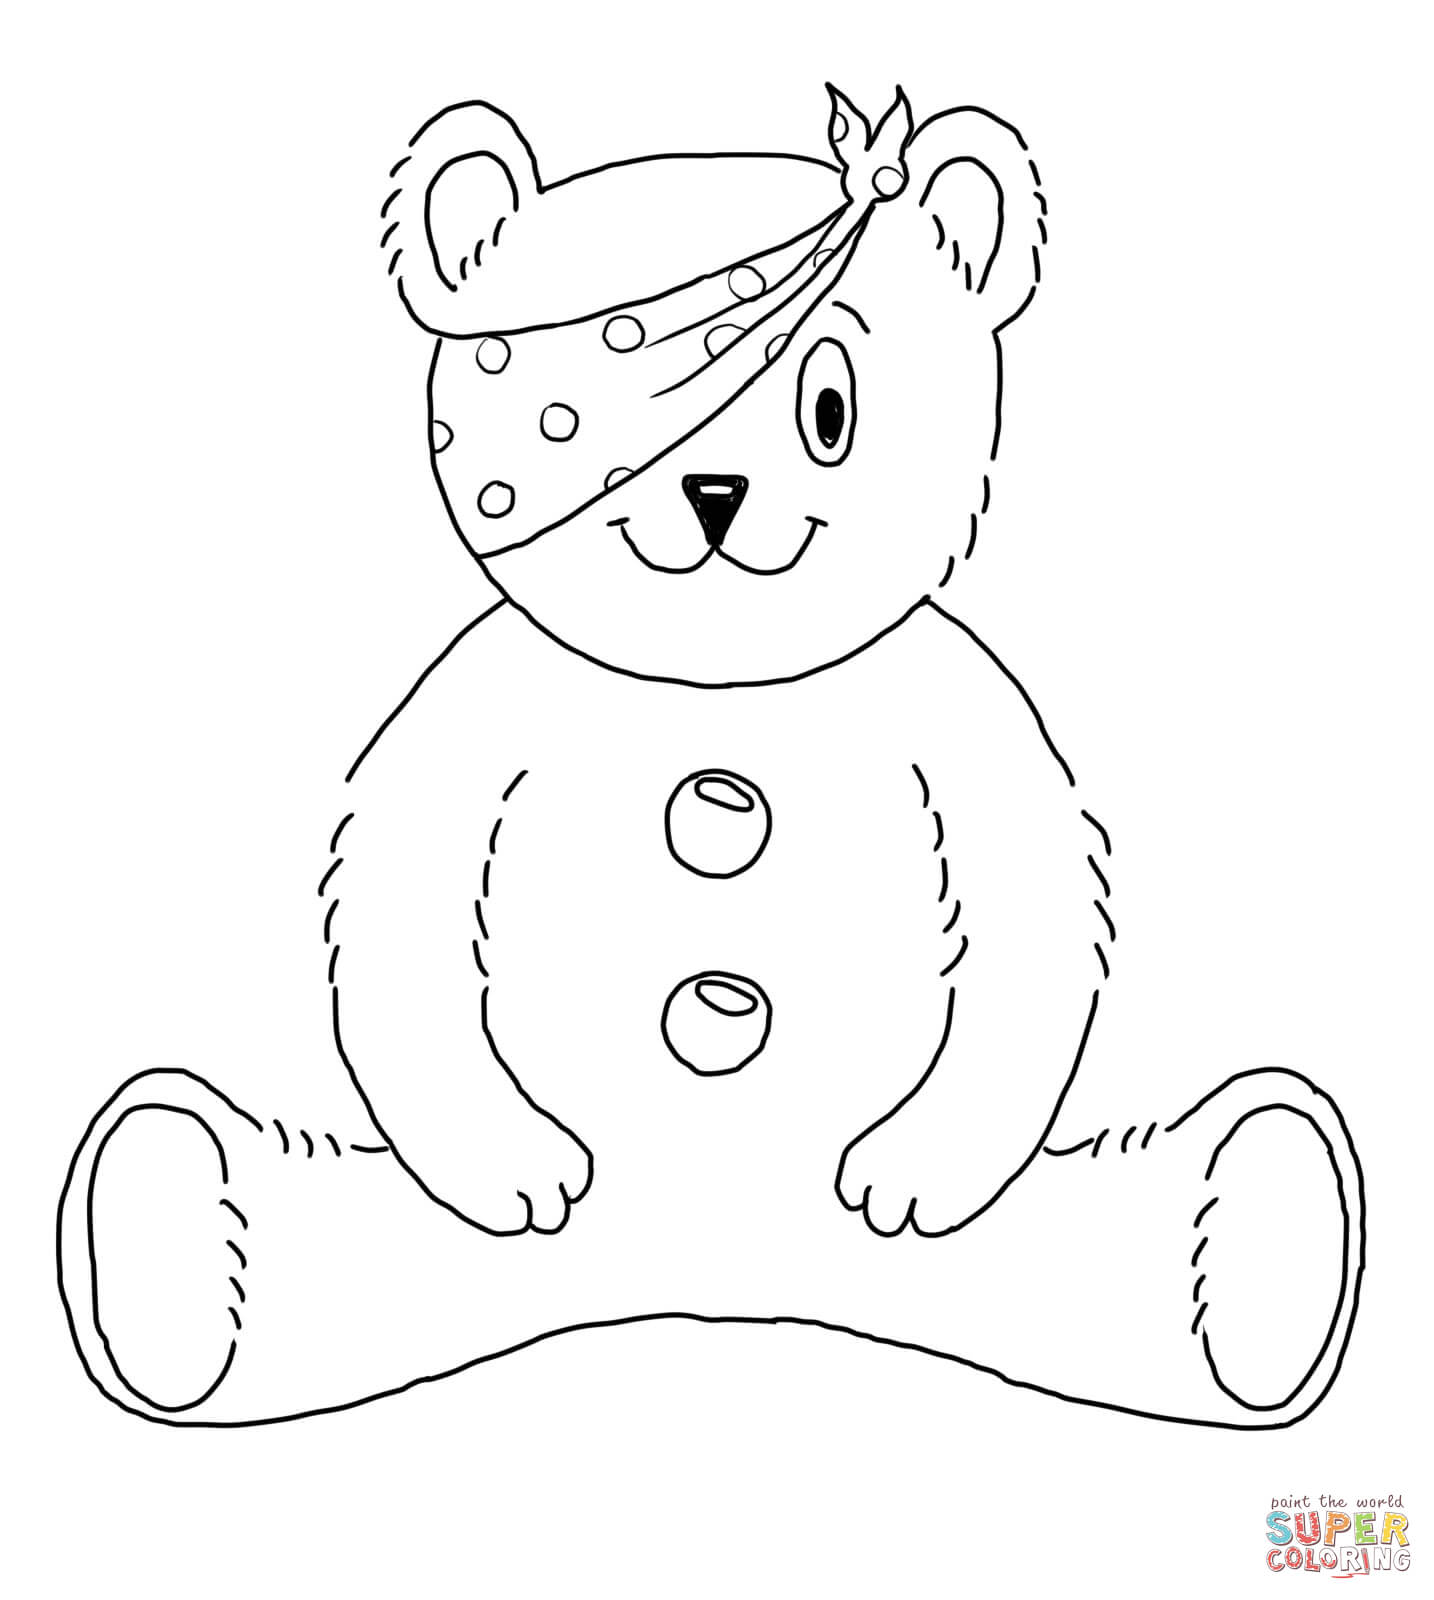 pudsey bear colouring pages free pudsey bear colouring pages sketch coloring page pages colouring free pudsey bear